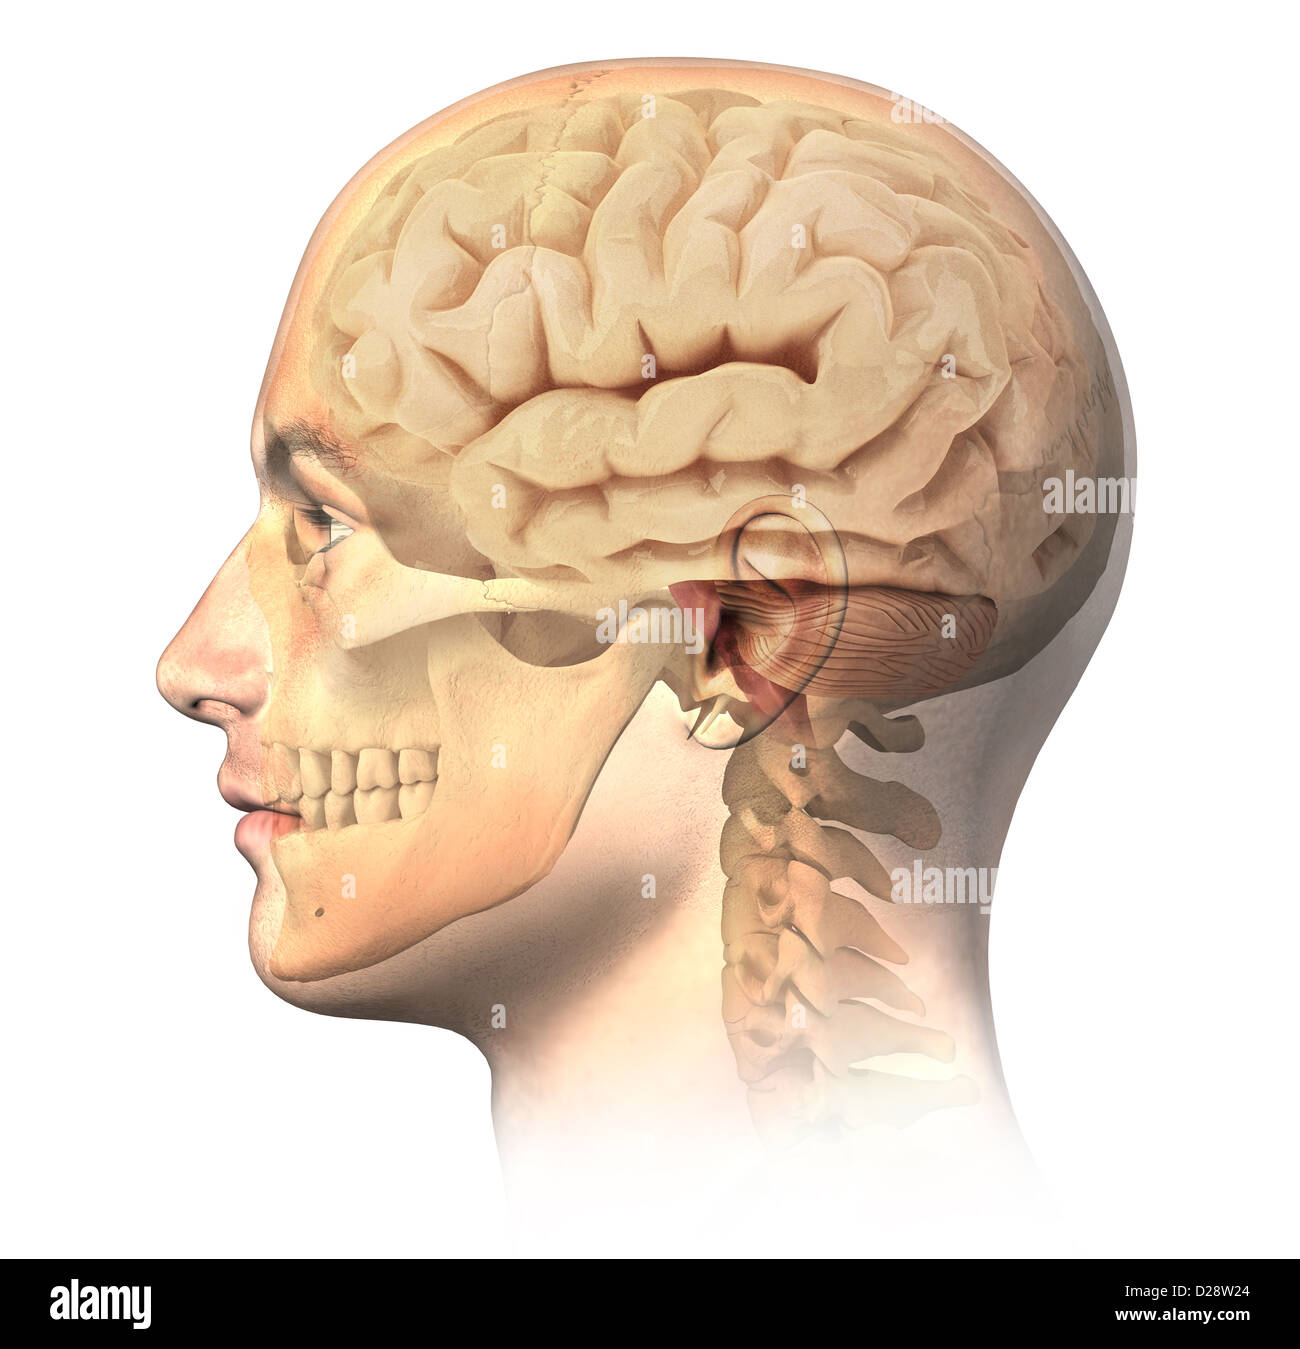 Male human head with skull and brain in ghost effect side view male human head with skull and brain in ghost effect side view anatomy image on white background with clipping path ccuart Choice Image